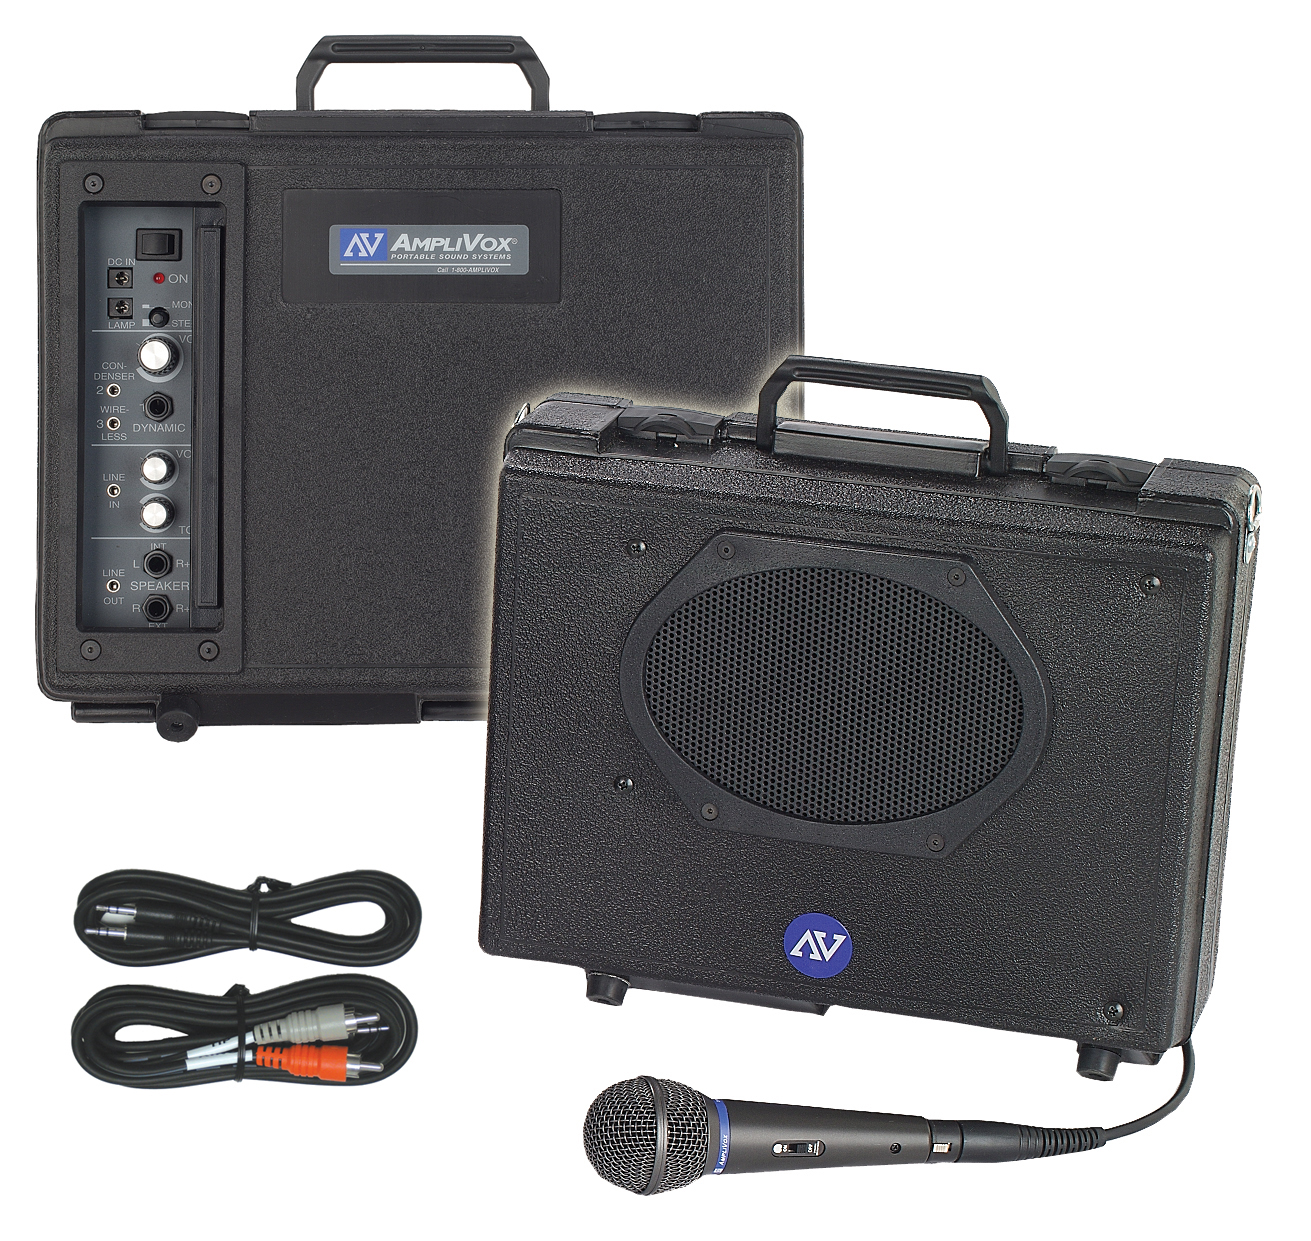 Small Portable Pa System : best small portable pa systems top wireless amplivox sound systems blog ~ Hamham.info Haus und Dekorationen